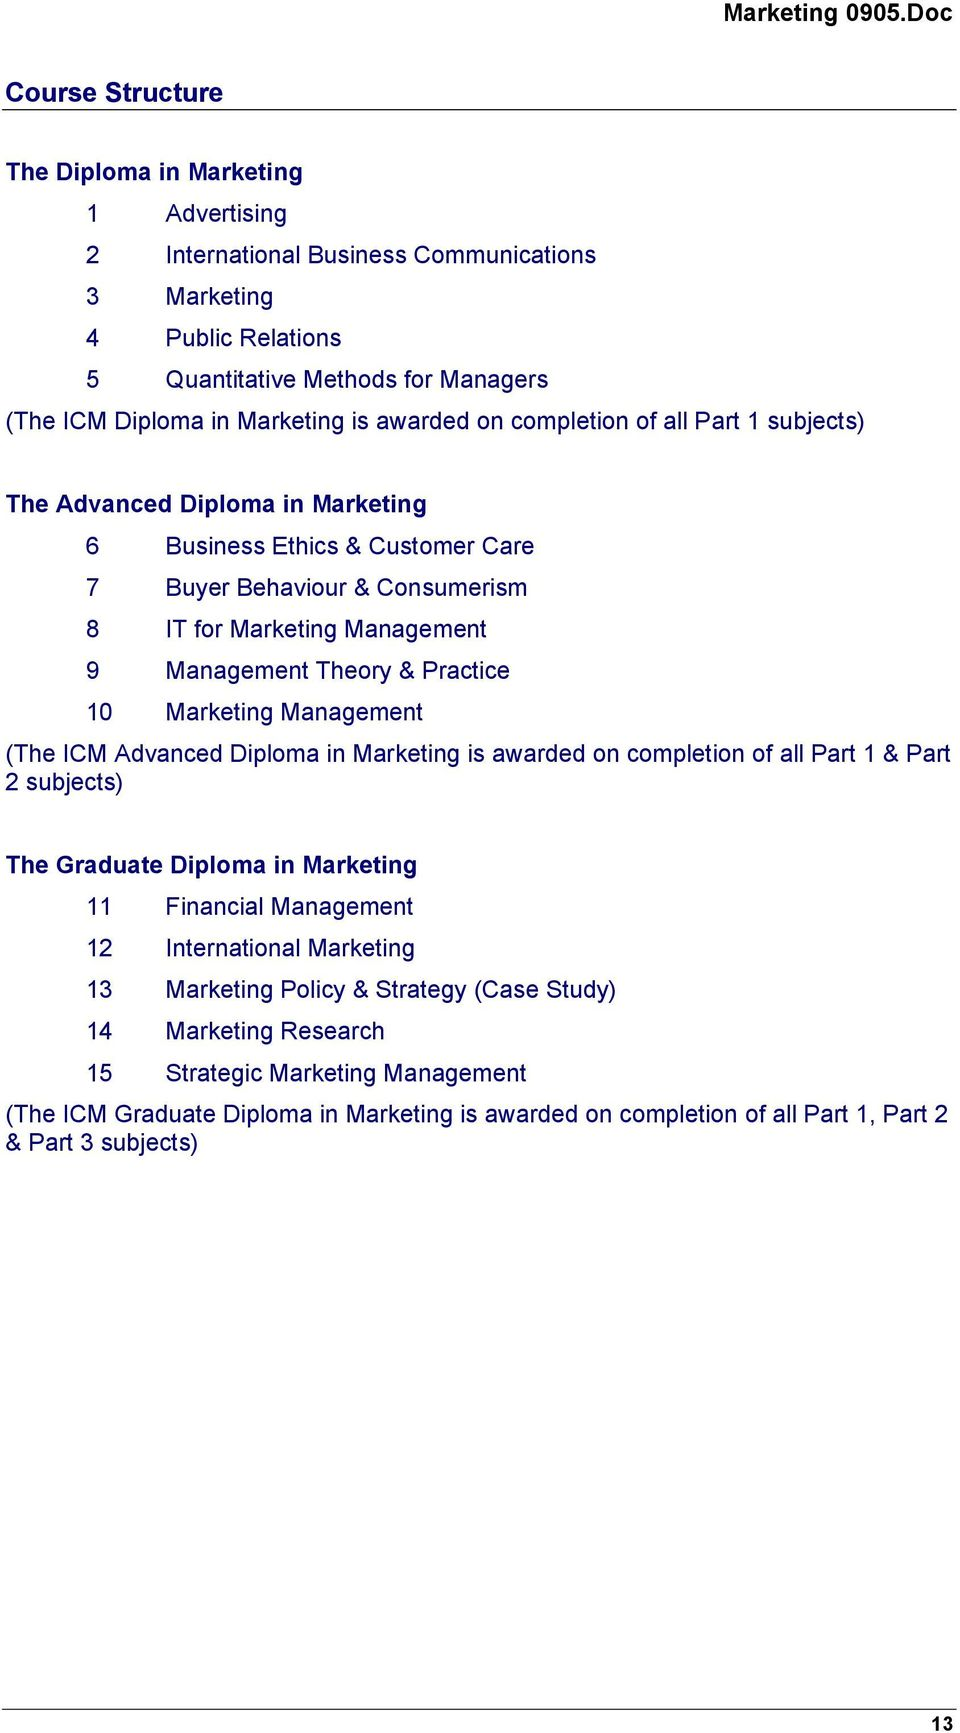 Icm Course Handbook Marketing Diploma Advanced Diploma. Used Cars Extended Warranty Urgi Center Lij. High Quality Stock Photo It Careers In Demand. Ramon Magsaysay Memorial Colleges. Why Do Breast Get Sore Electronic Driver Logs. Eating Disorders Austin Ableton Live For Ipad. Direct Quote Life Insurance Custom Tote Bags. Curing Depression Without Medication. Electrical Energy Formula Bail Bonds In Miami